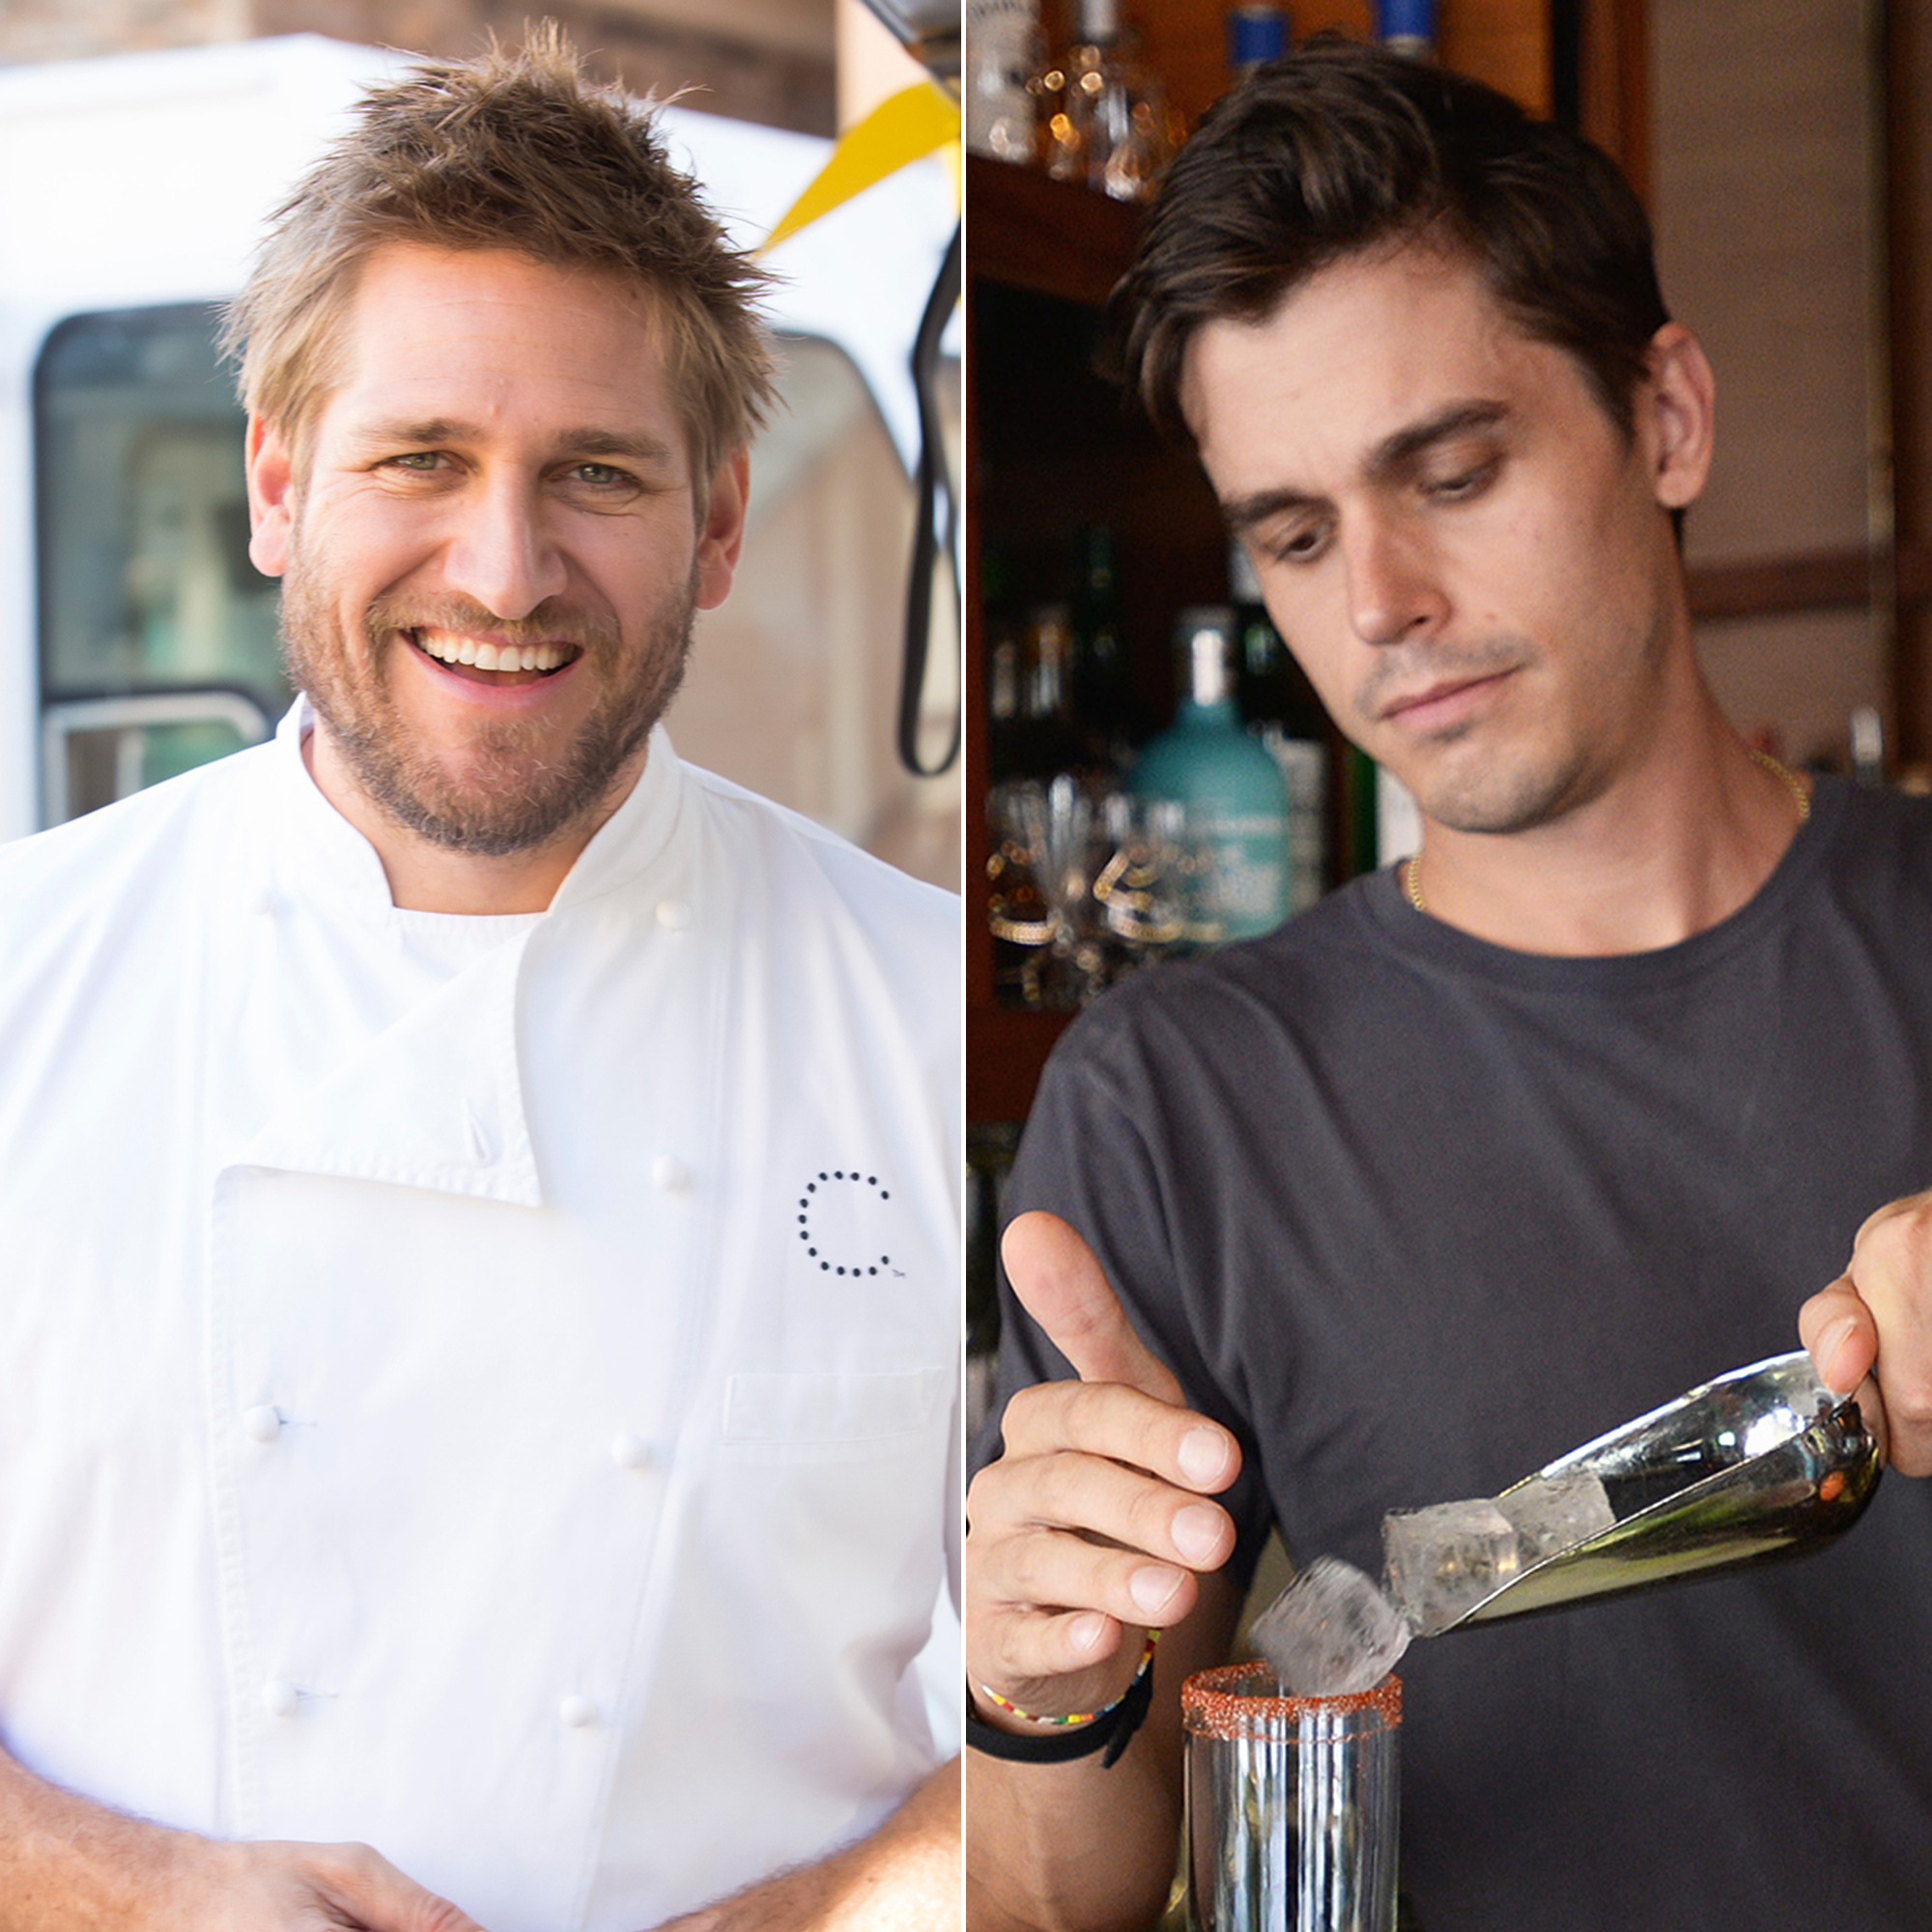 Hottest Male Chefs: Curtis Stone, Antoni Porowski and More - Curtis Stone and Antoni Porowski.